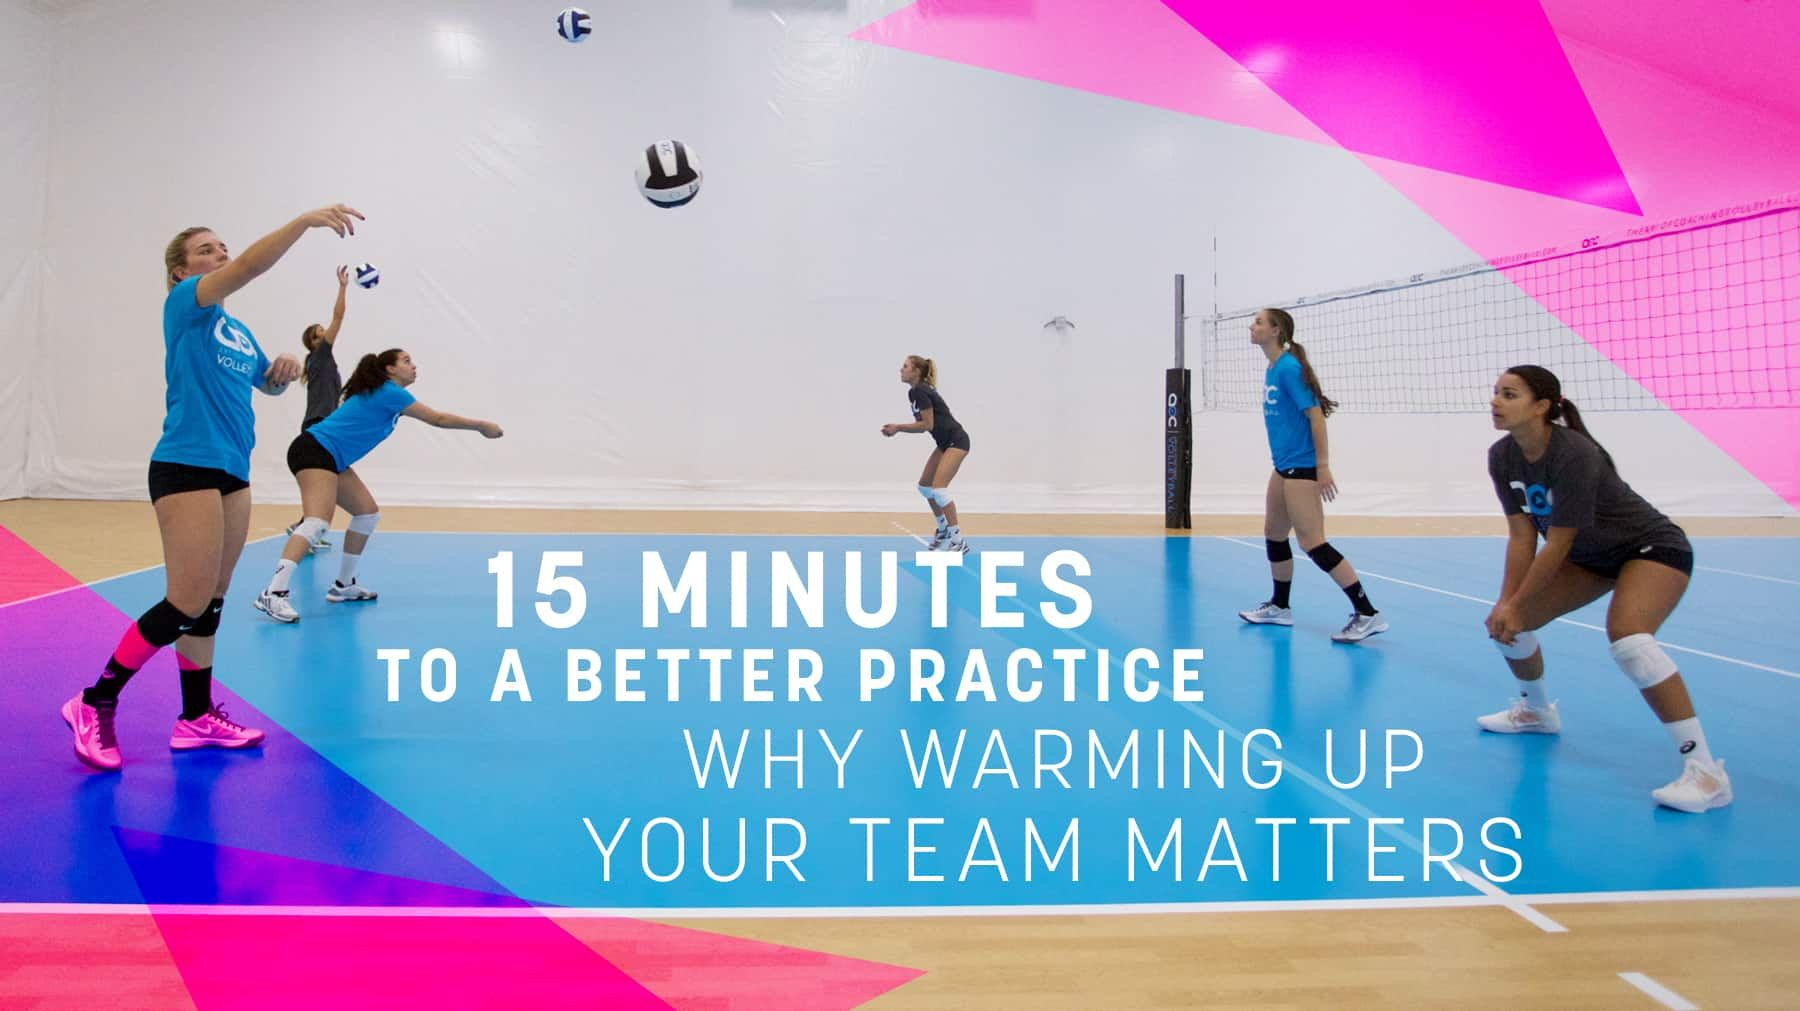 15 Minutes To A Better Practice Why Warming Up Your Team Matters Coaching Volleyball Volleyball Warmup